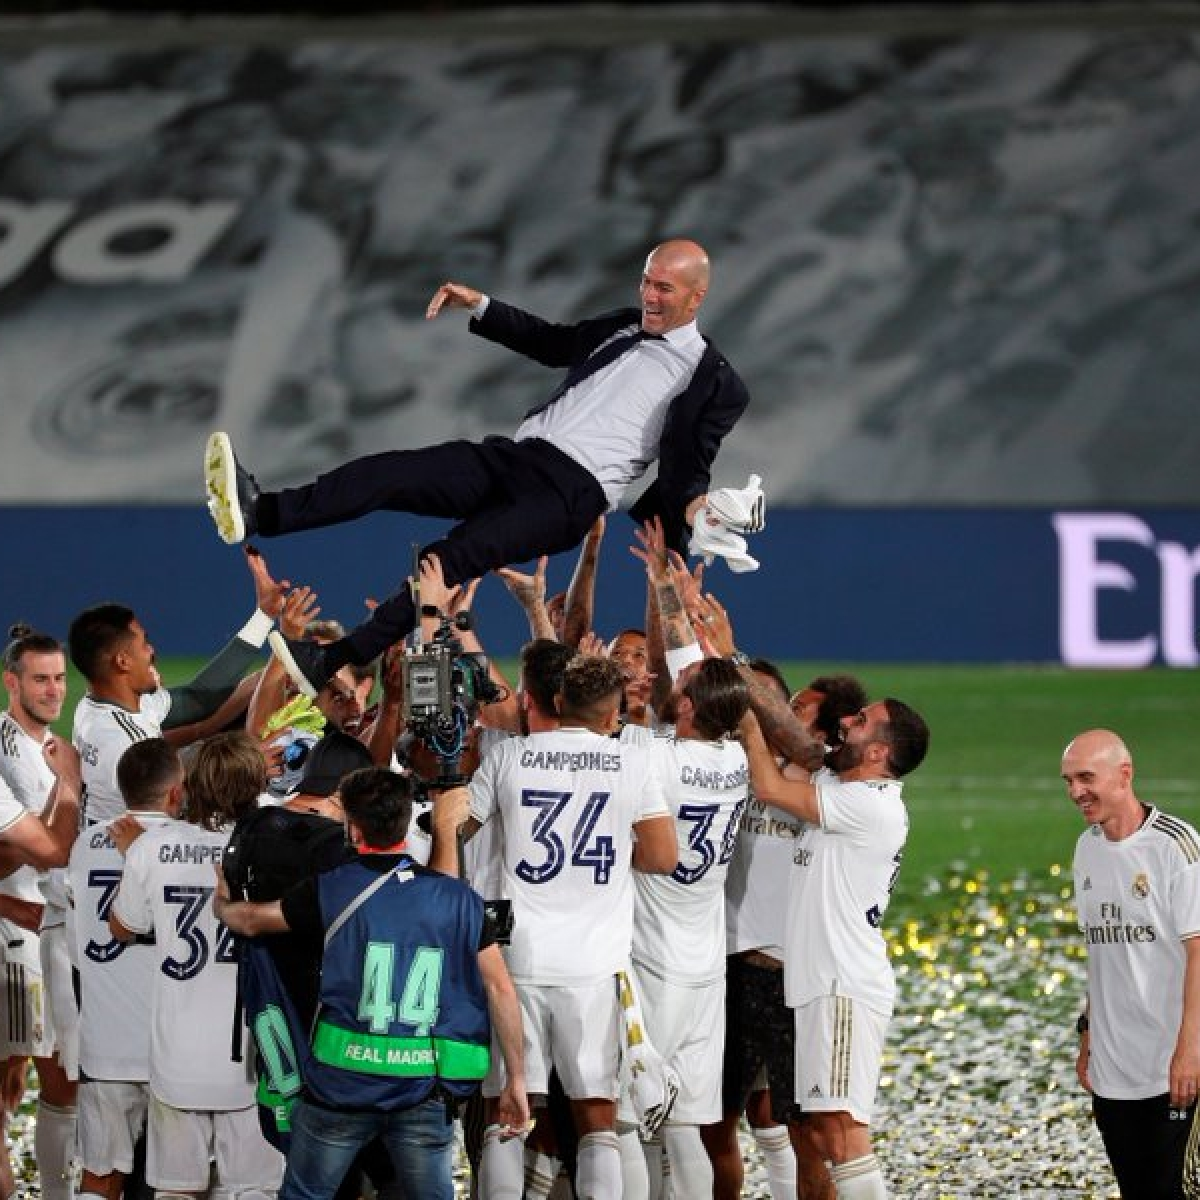 Zinedine Zidane completes 100 La Liga wins as Real Madrid head coach